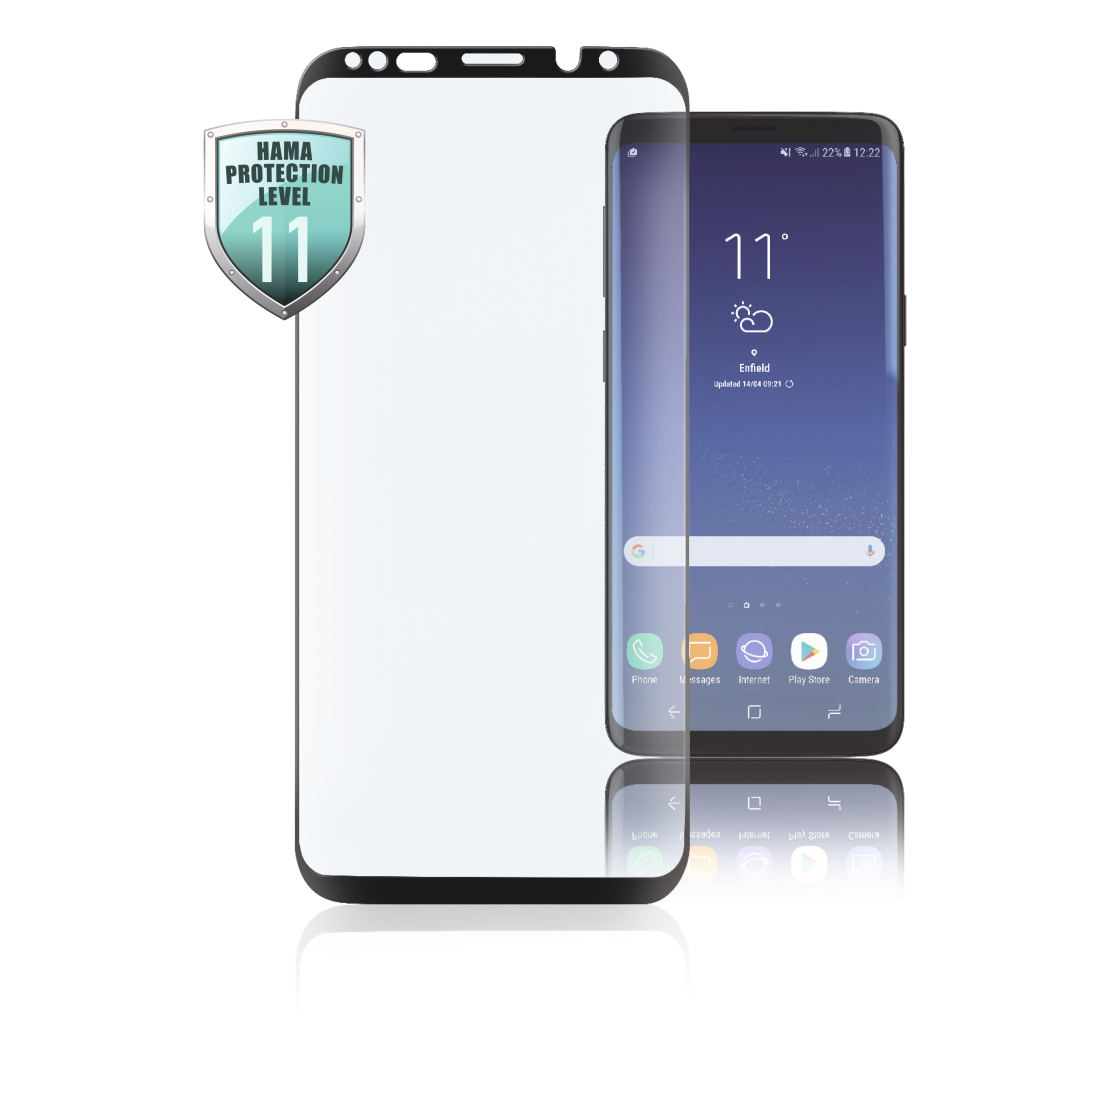 abx High-Res Image - Hama, Verre de protection Full-Screen 3D pour Samsung Galaxy Note 9, noir